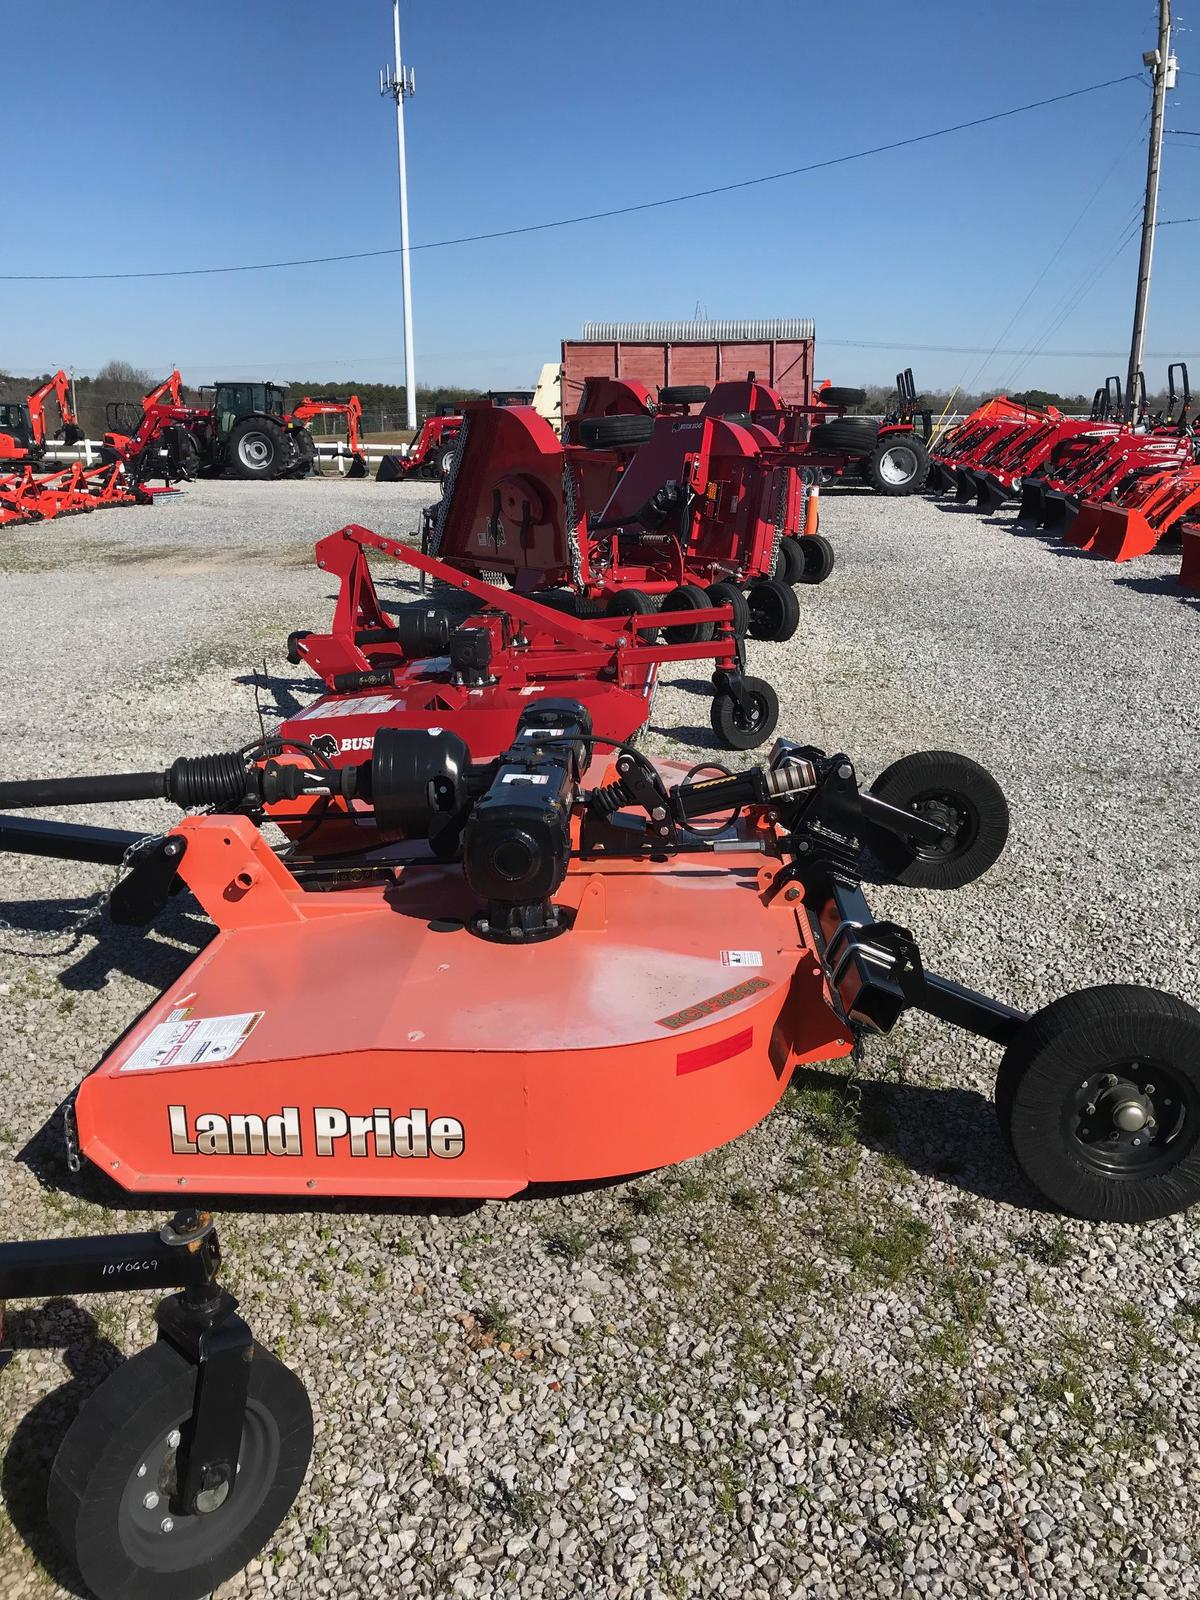 New Inventory from Bush Hog, Woods and Land Pride Tyler Brothers